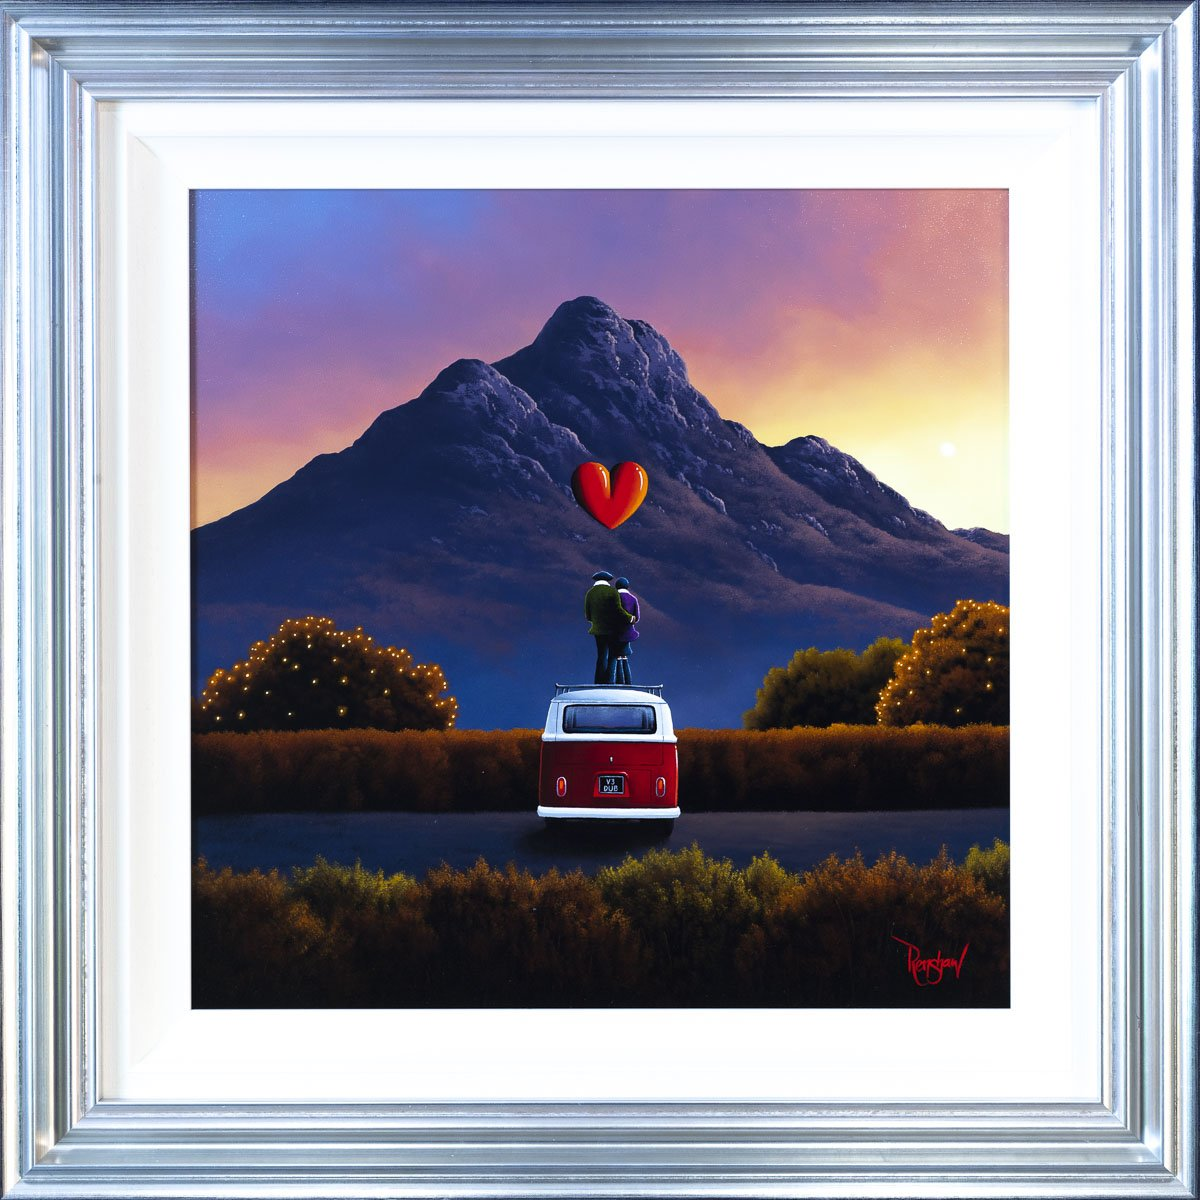 Camping With A View - Original David Renshaw Framed